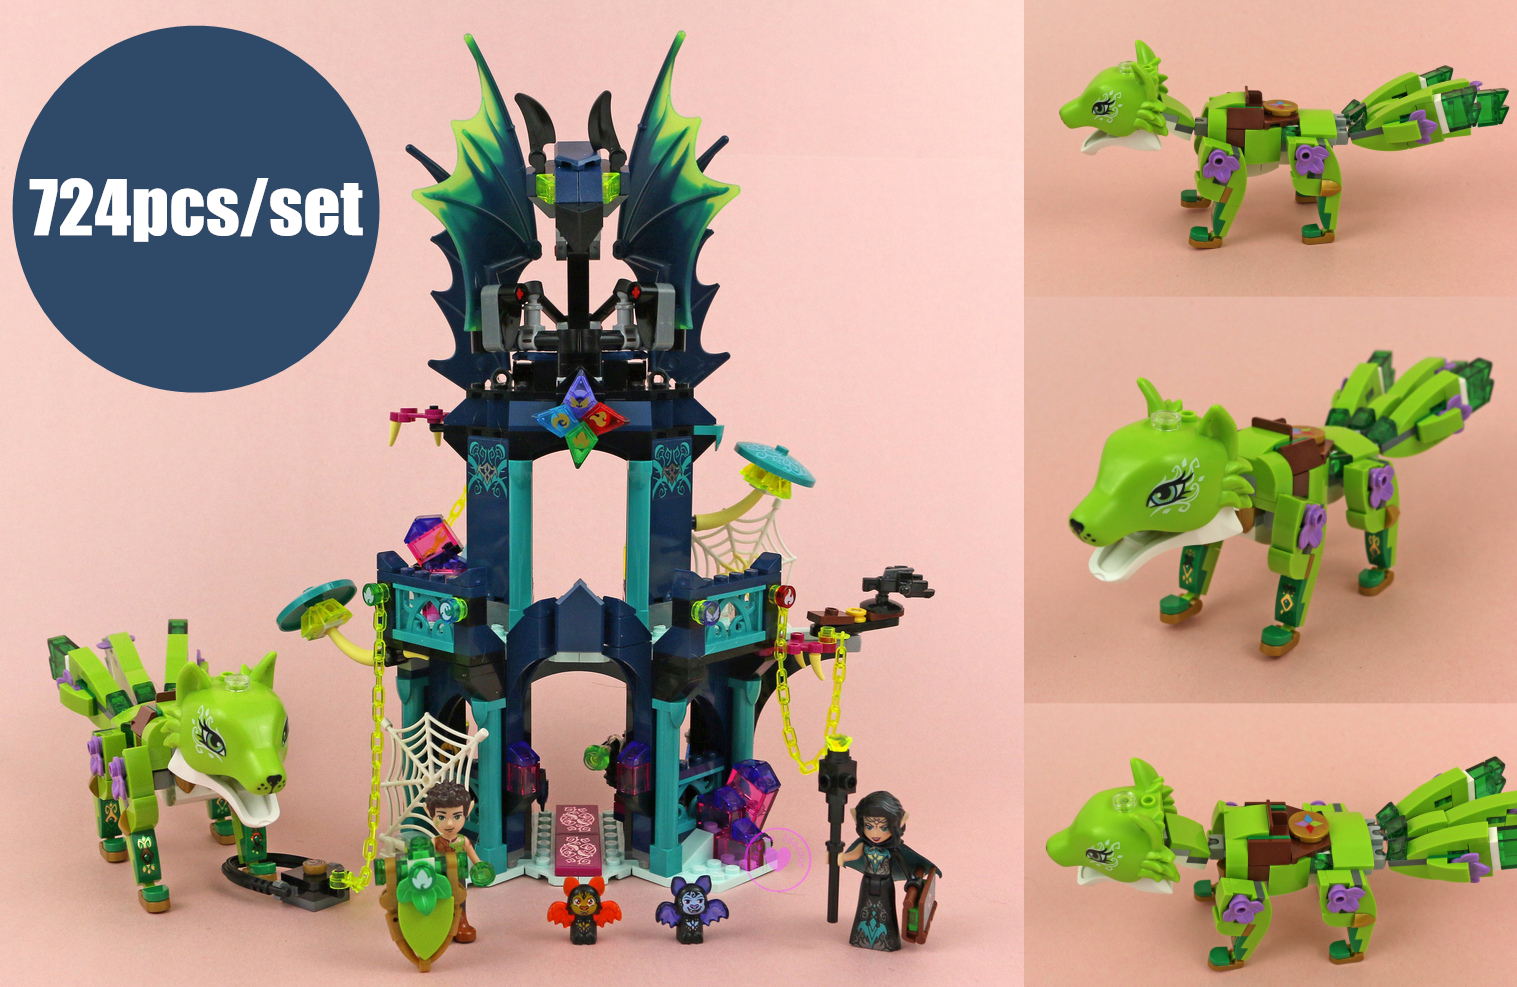 New Elves Noctura's Tower Earth Fox Rescue fit legoings elves fairy figures friends Building Block Bricks 41194 Toy kid gift toy 2018 new girl friends fairy elves dragon building blocks kit brick toys compatible legoes kid gift fairy elves girls birthday